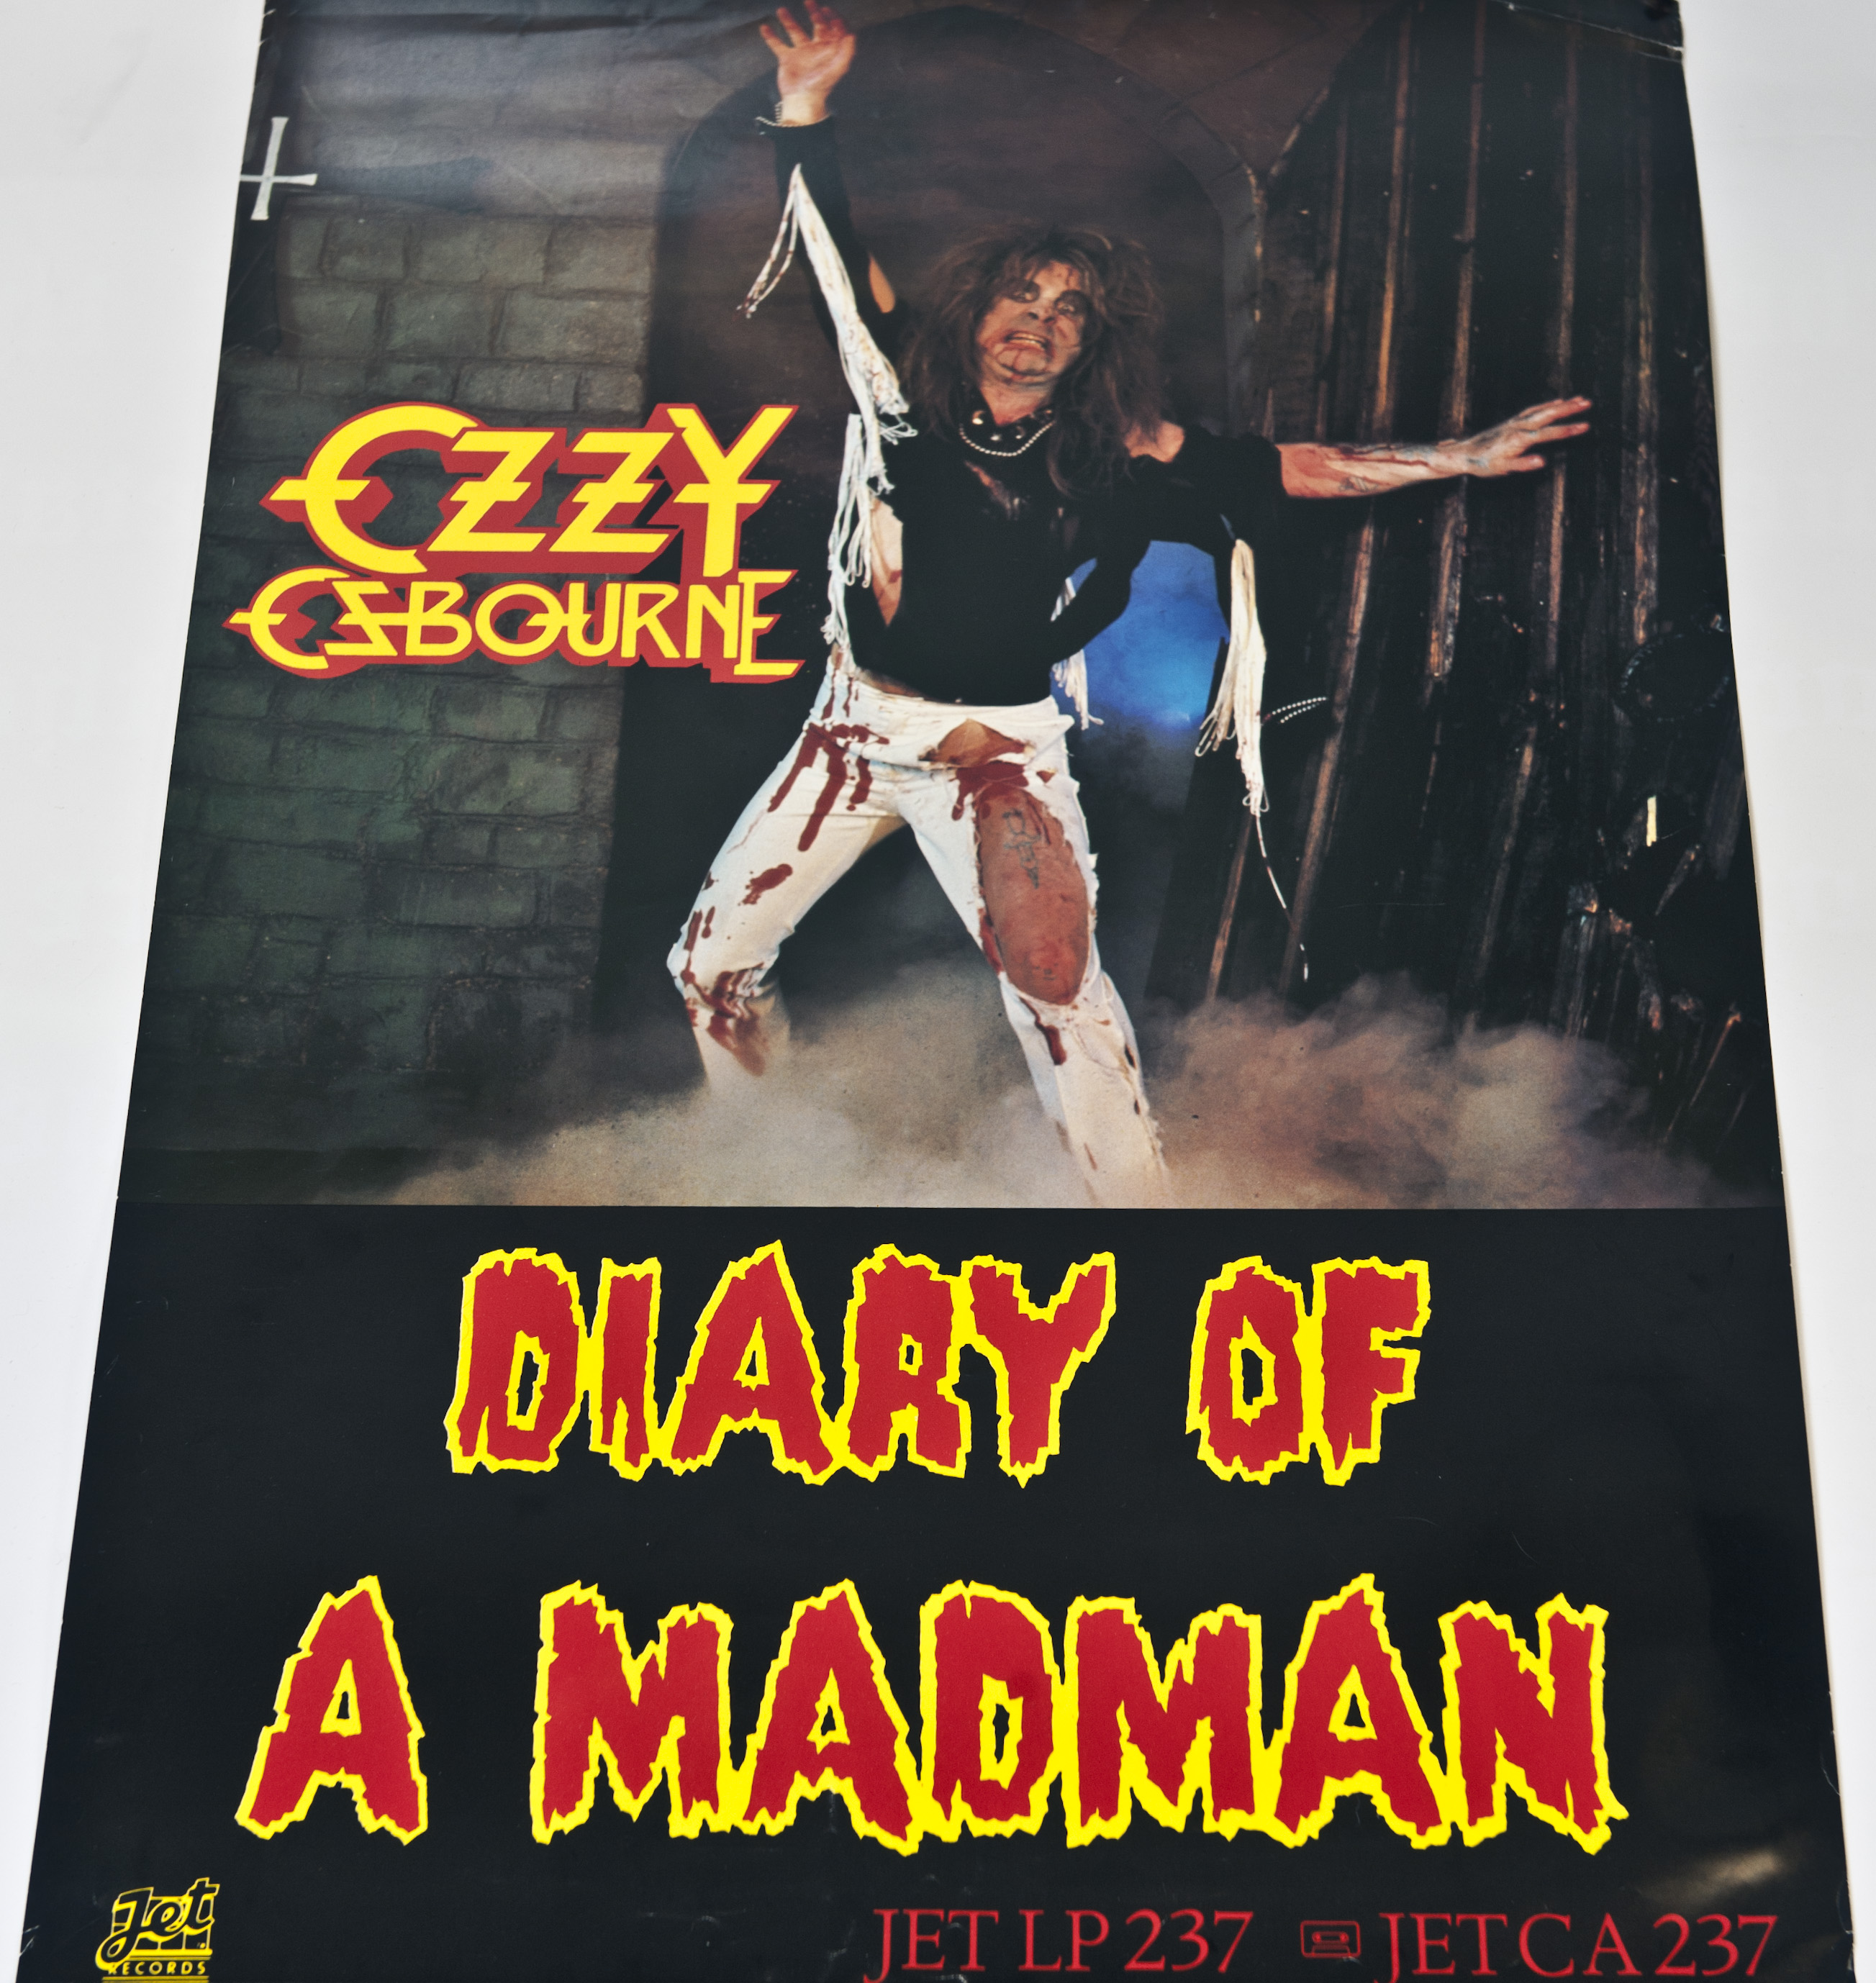 diary of a madman Listen free to ozzy osbourne – diary of a madman (over the mountain, flying high again and more) 8 tracks (43:23) diary of a madman is an album by ozzy osbourne.